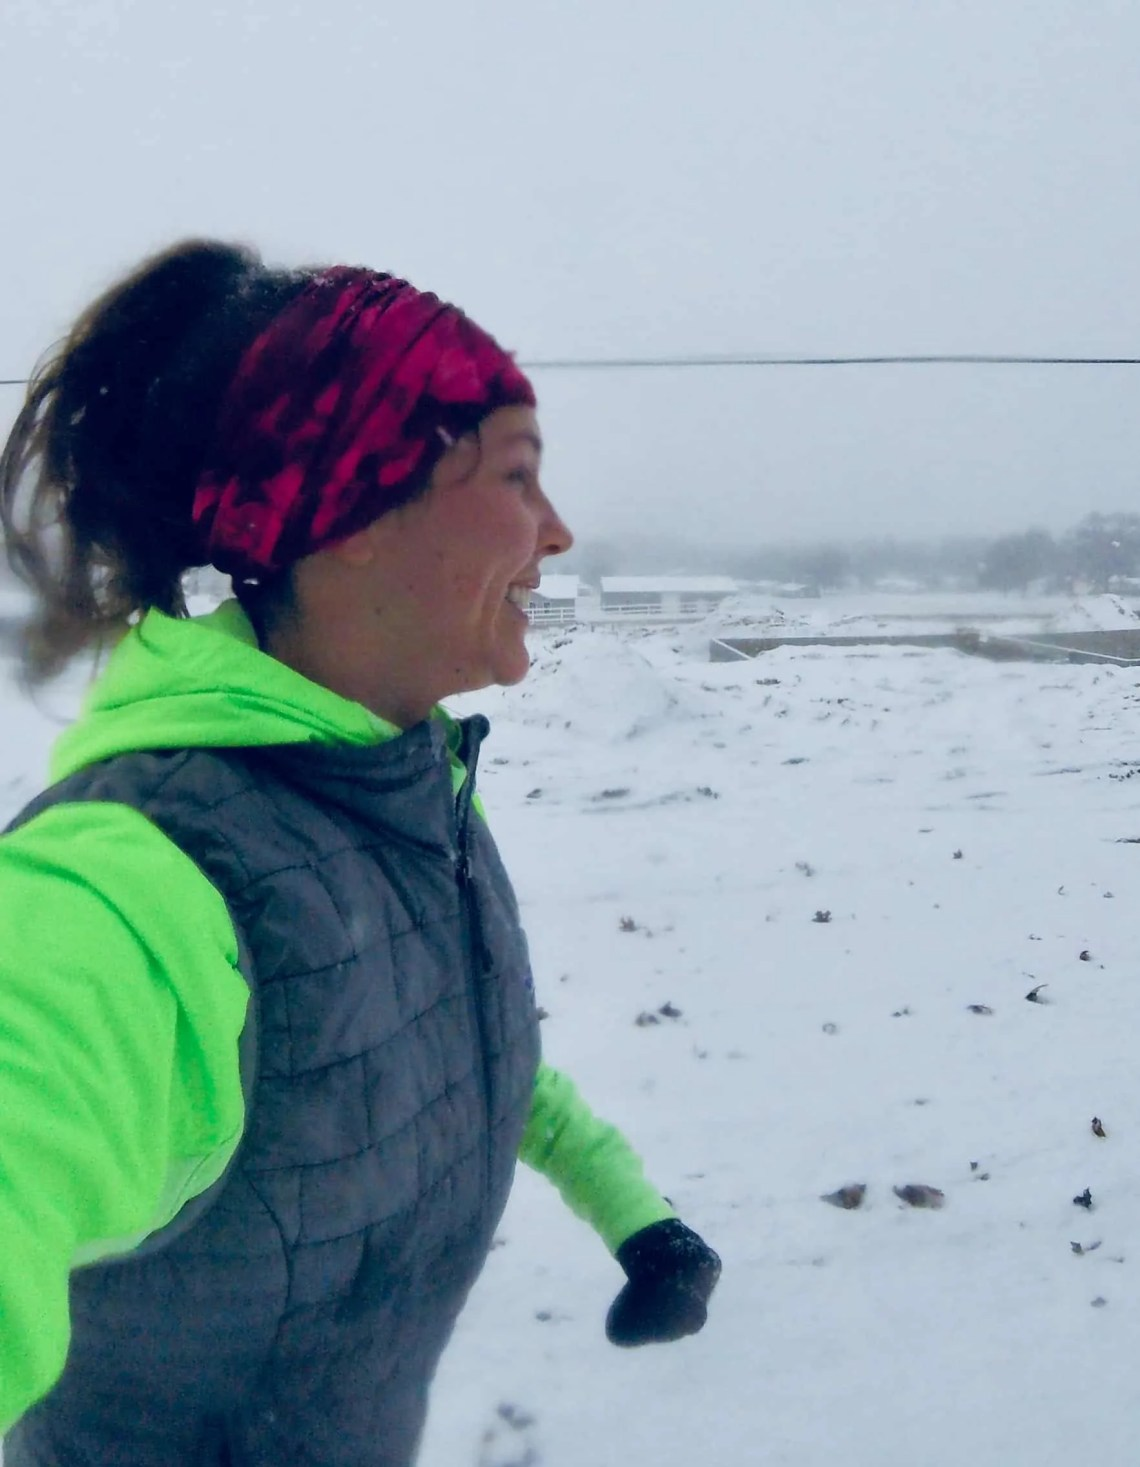 Winter running is without a doubt the most challenging season for runners. The cold weather, snow and darkness make maintaining running training feel impossible. Here are some game changing winter running tips to keep you motivated and train through the winter. #winterrunning #runningtips